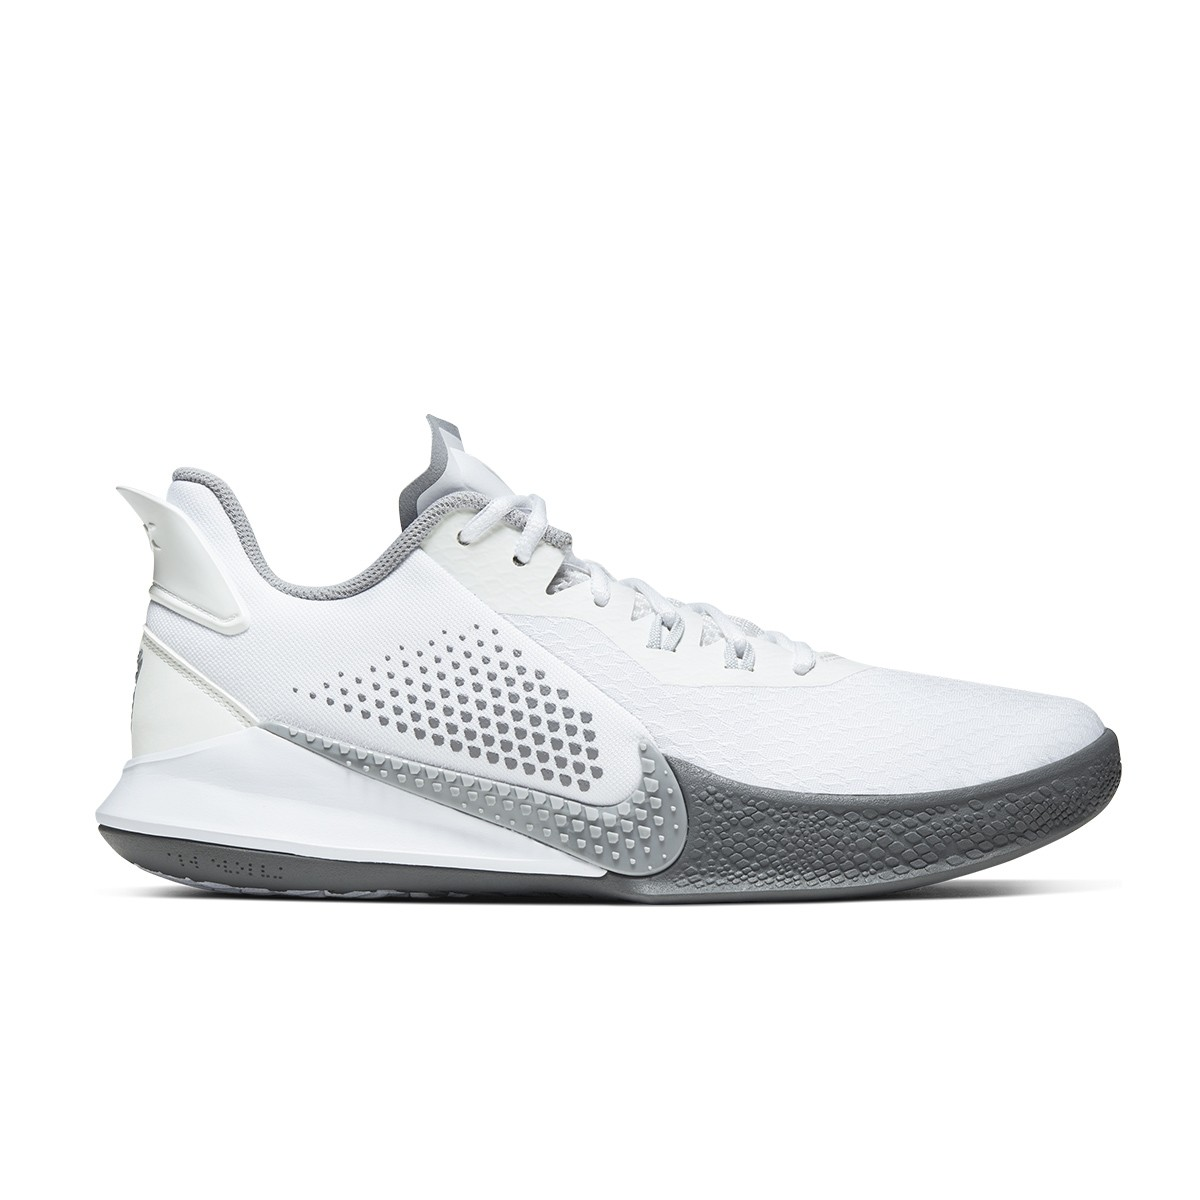 Nike Mamba Fury Jr 'White'-CK2087-100-Jr